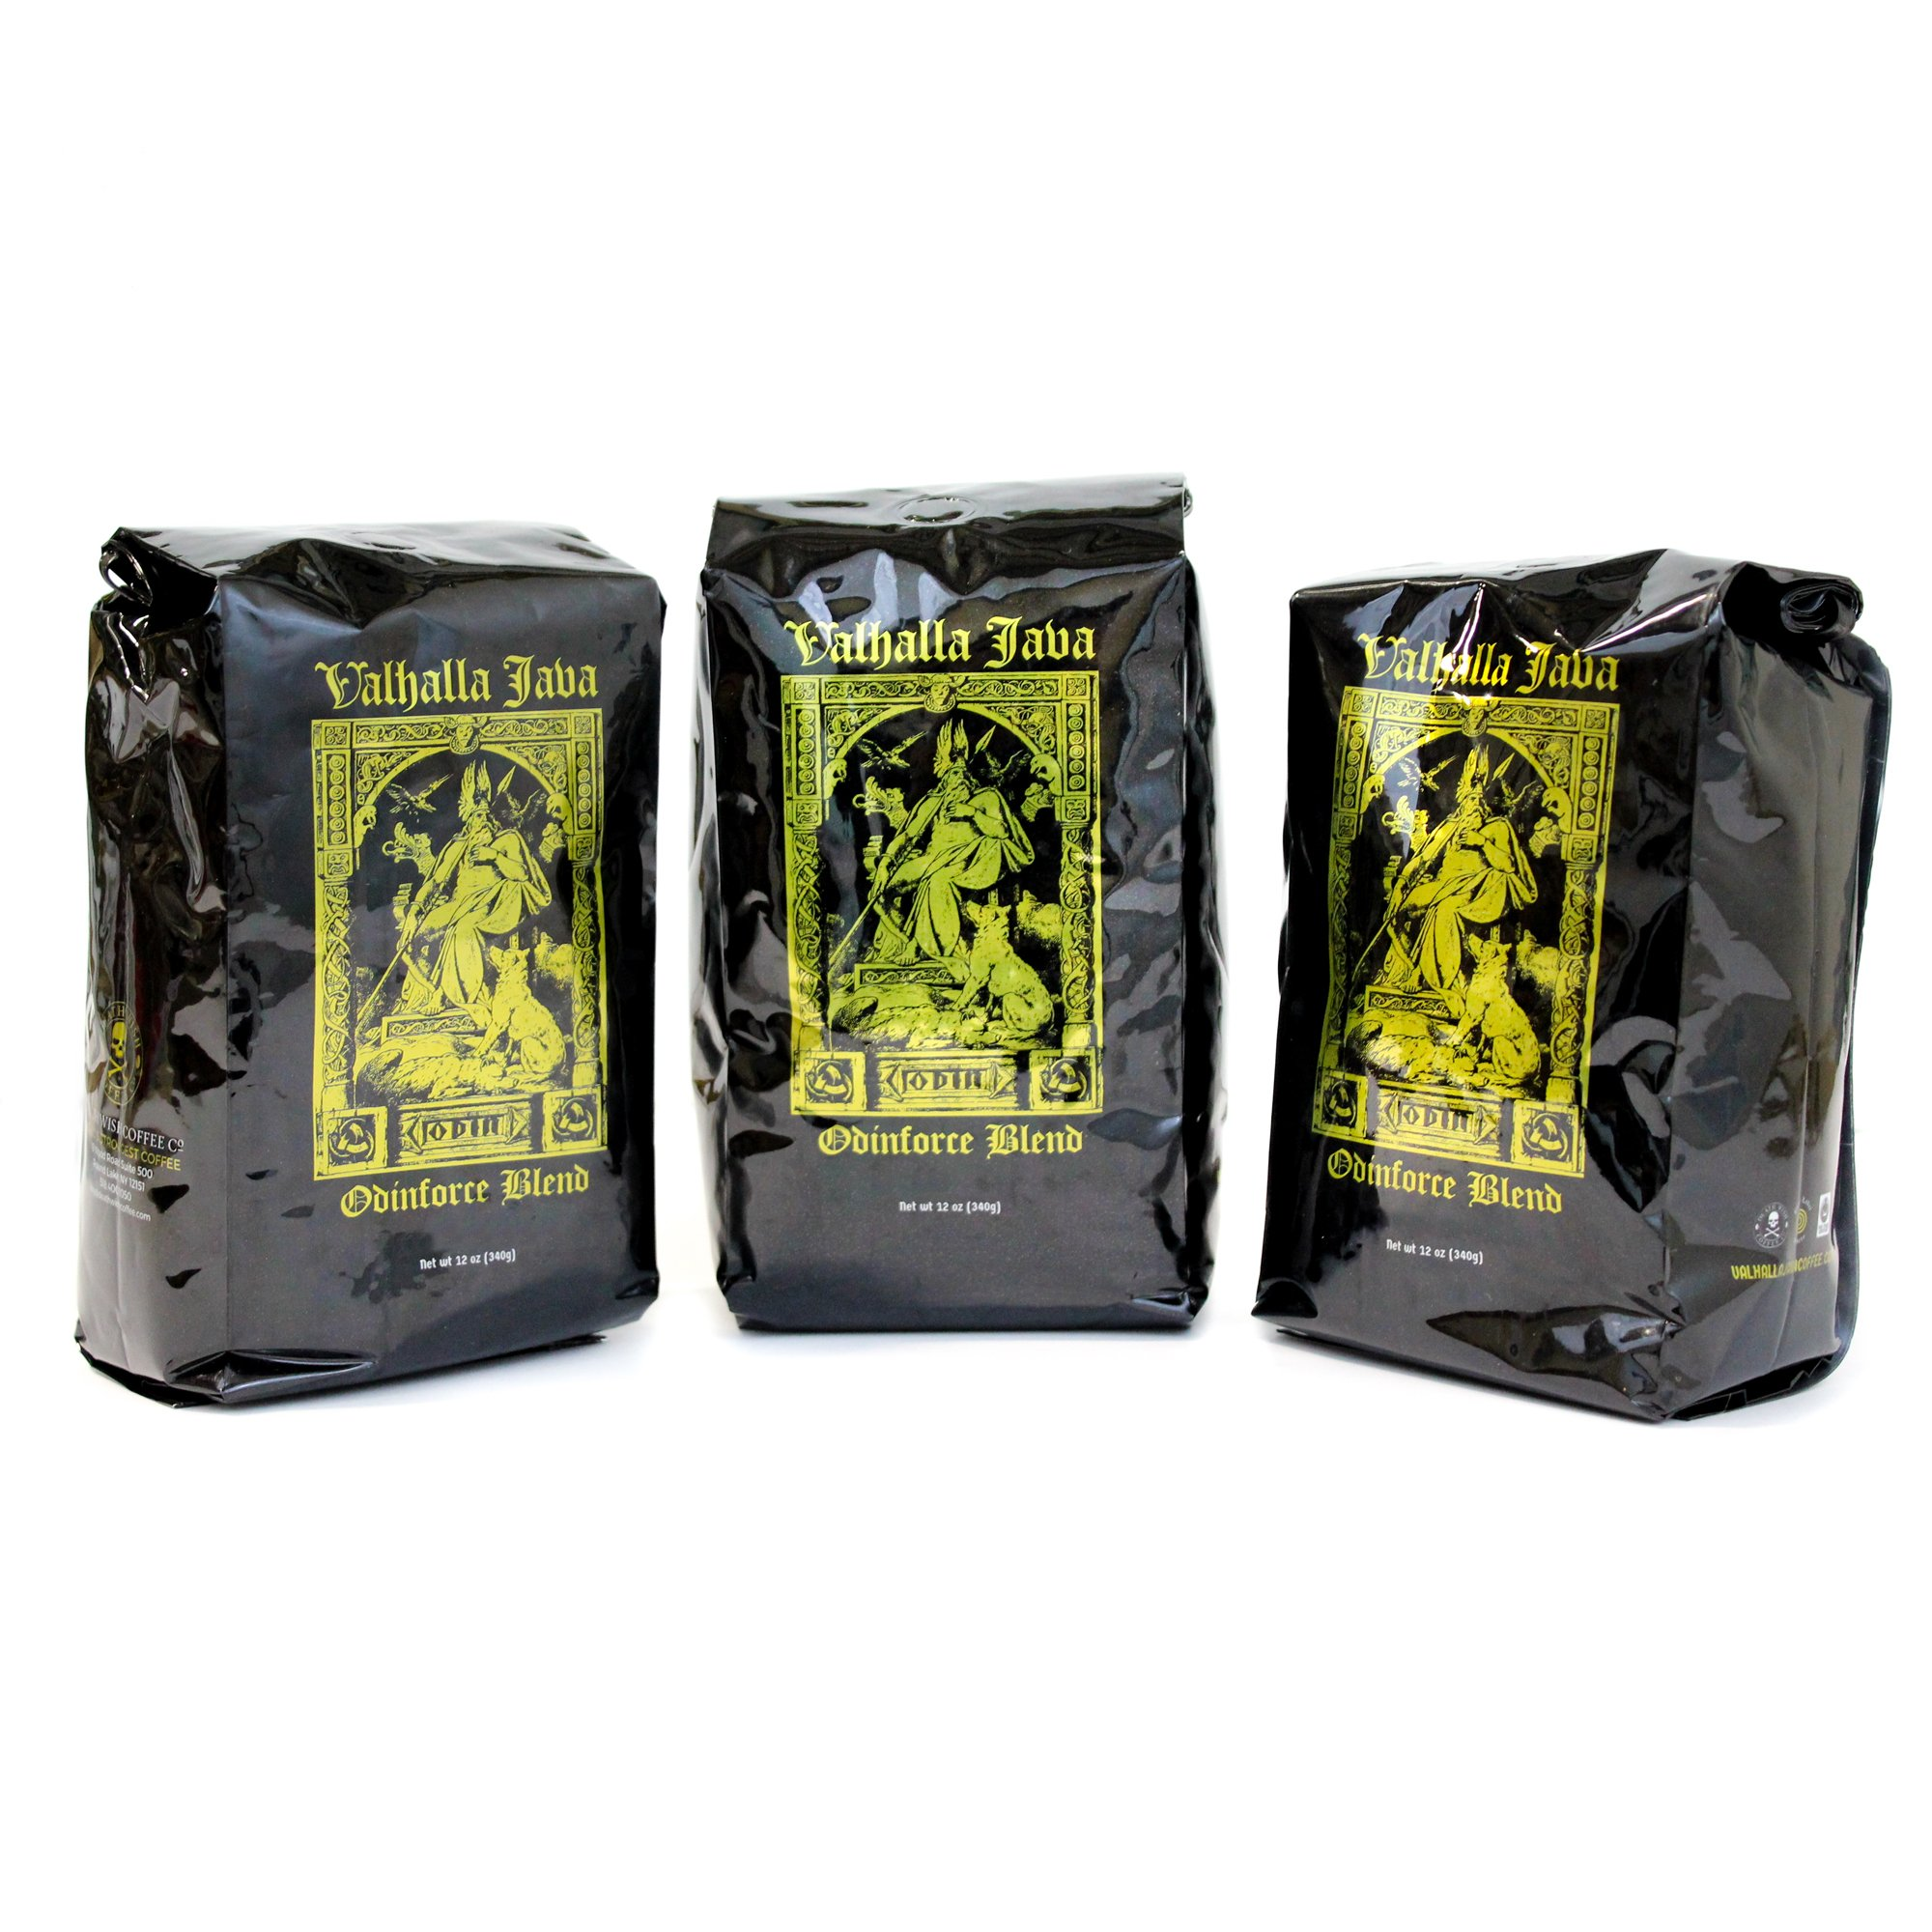 Valhalla Java Ground Coffee Bundle Deal, USDA Certified Organic & Fair Trade (3-Pack)